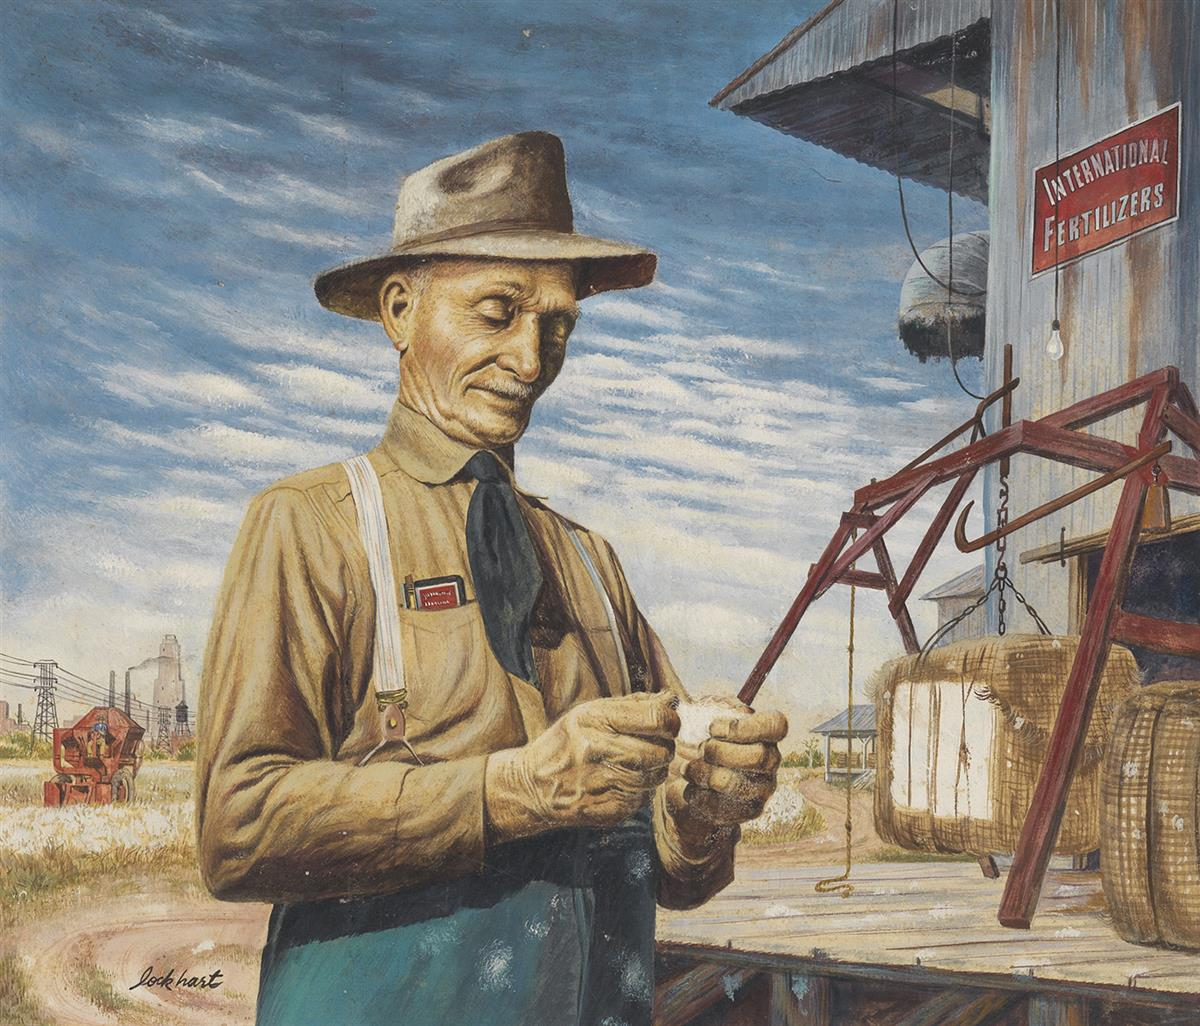 JAMES-LOCKHART-(ADVERTISING--AGRICULTURE)-Satisfaction-at-Ha